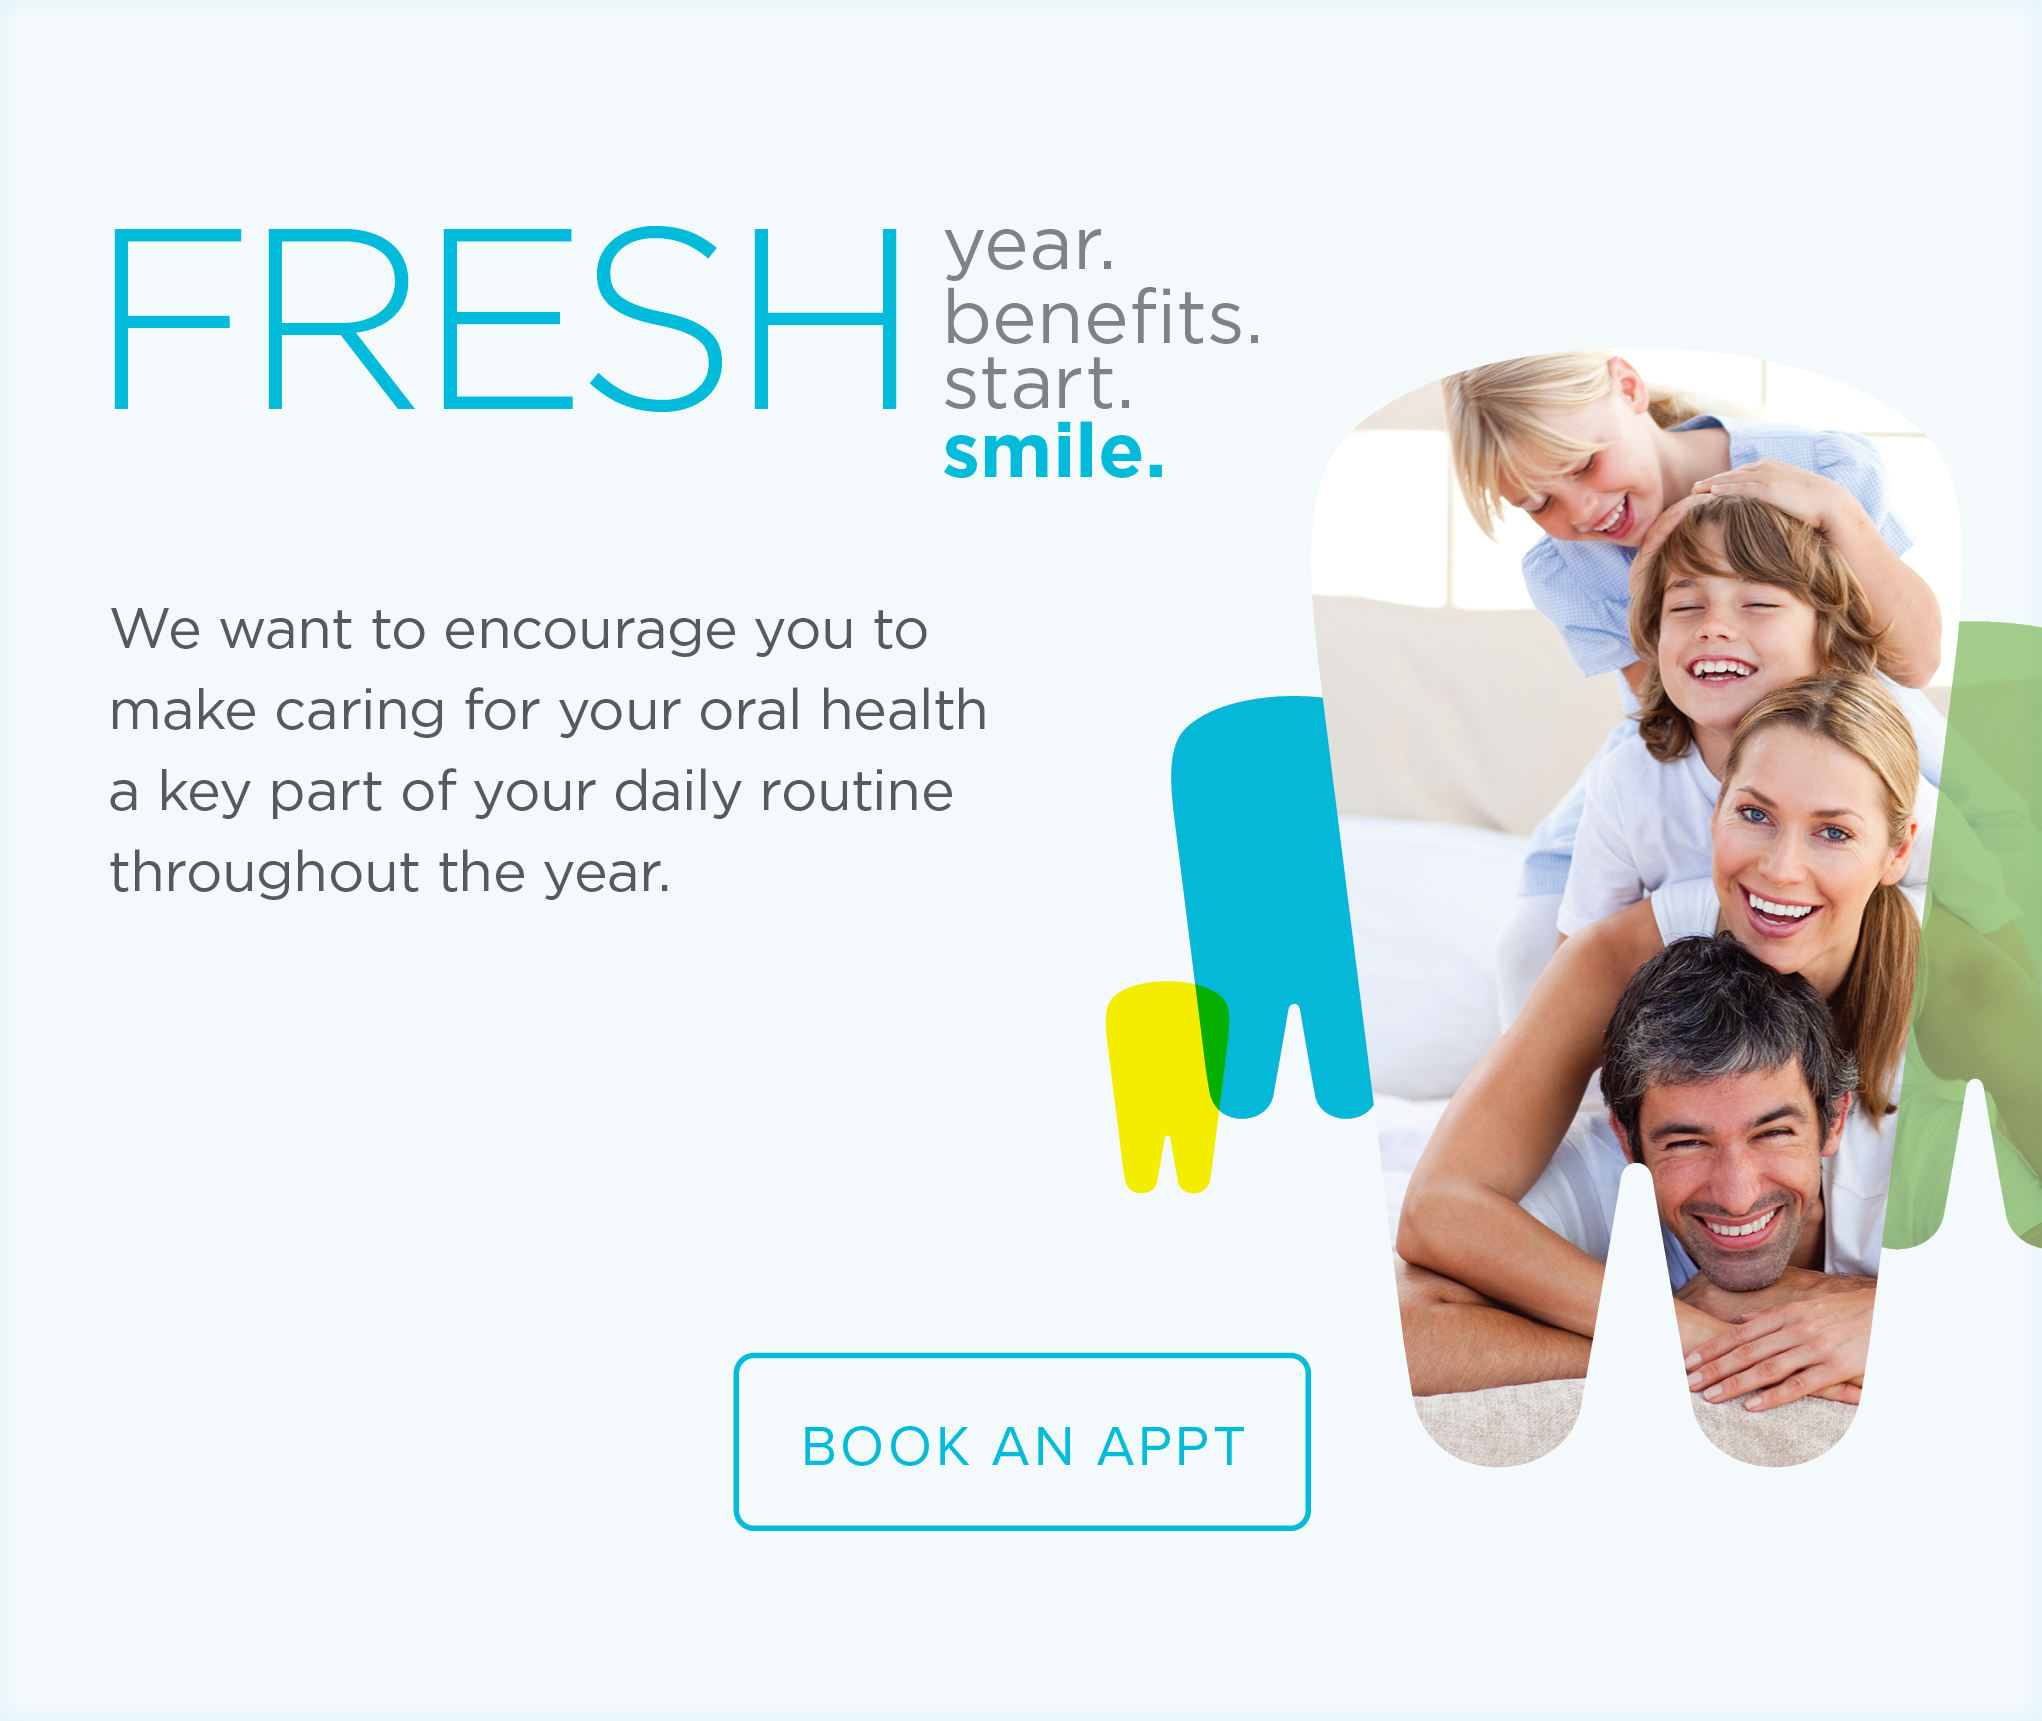 New Braunfels Modern Dentistry - Make the Most of Your Benefits